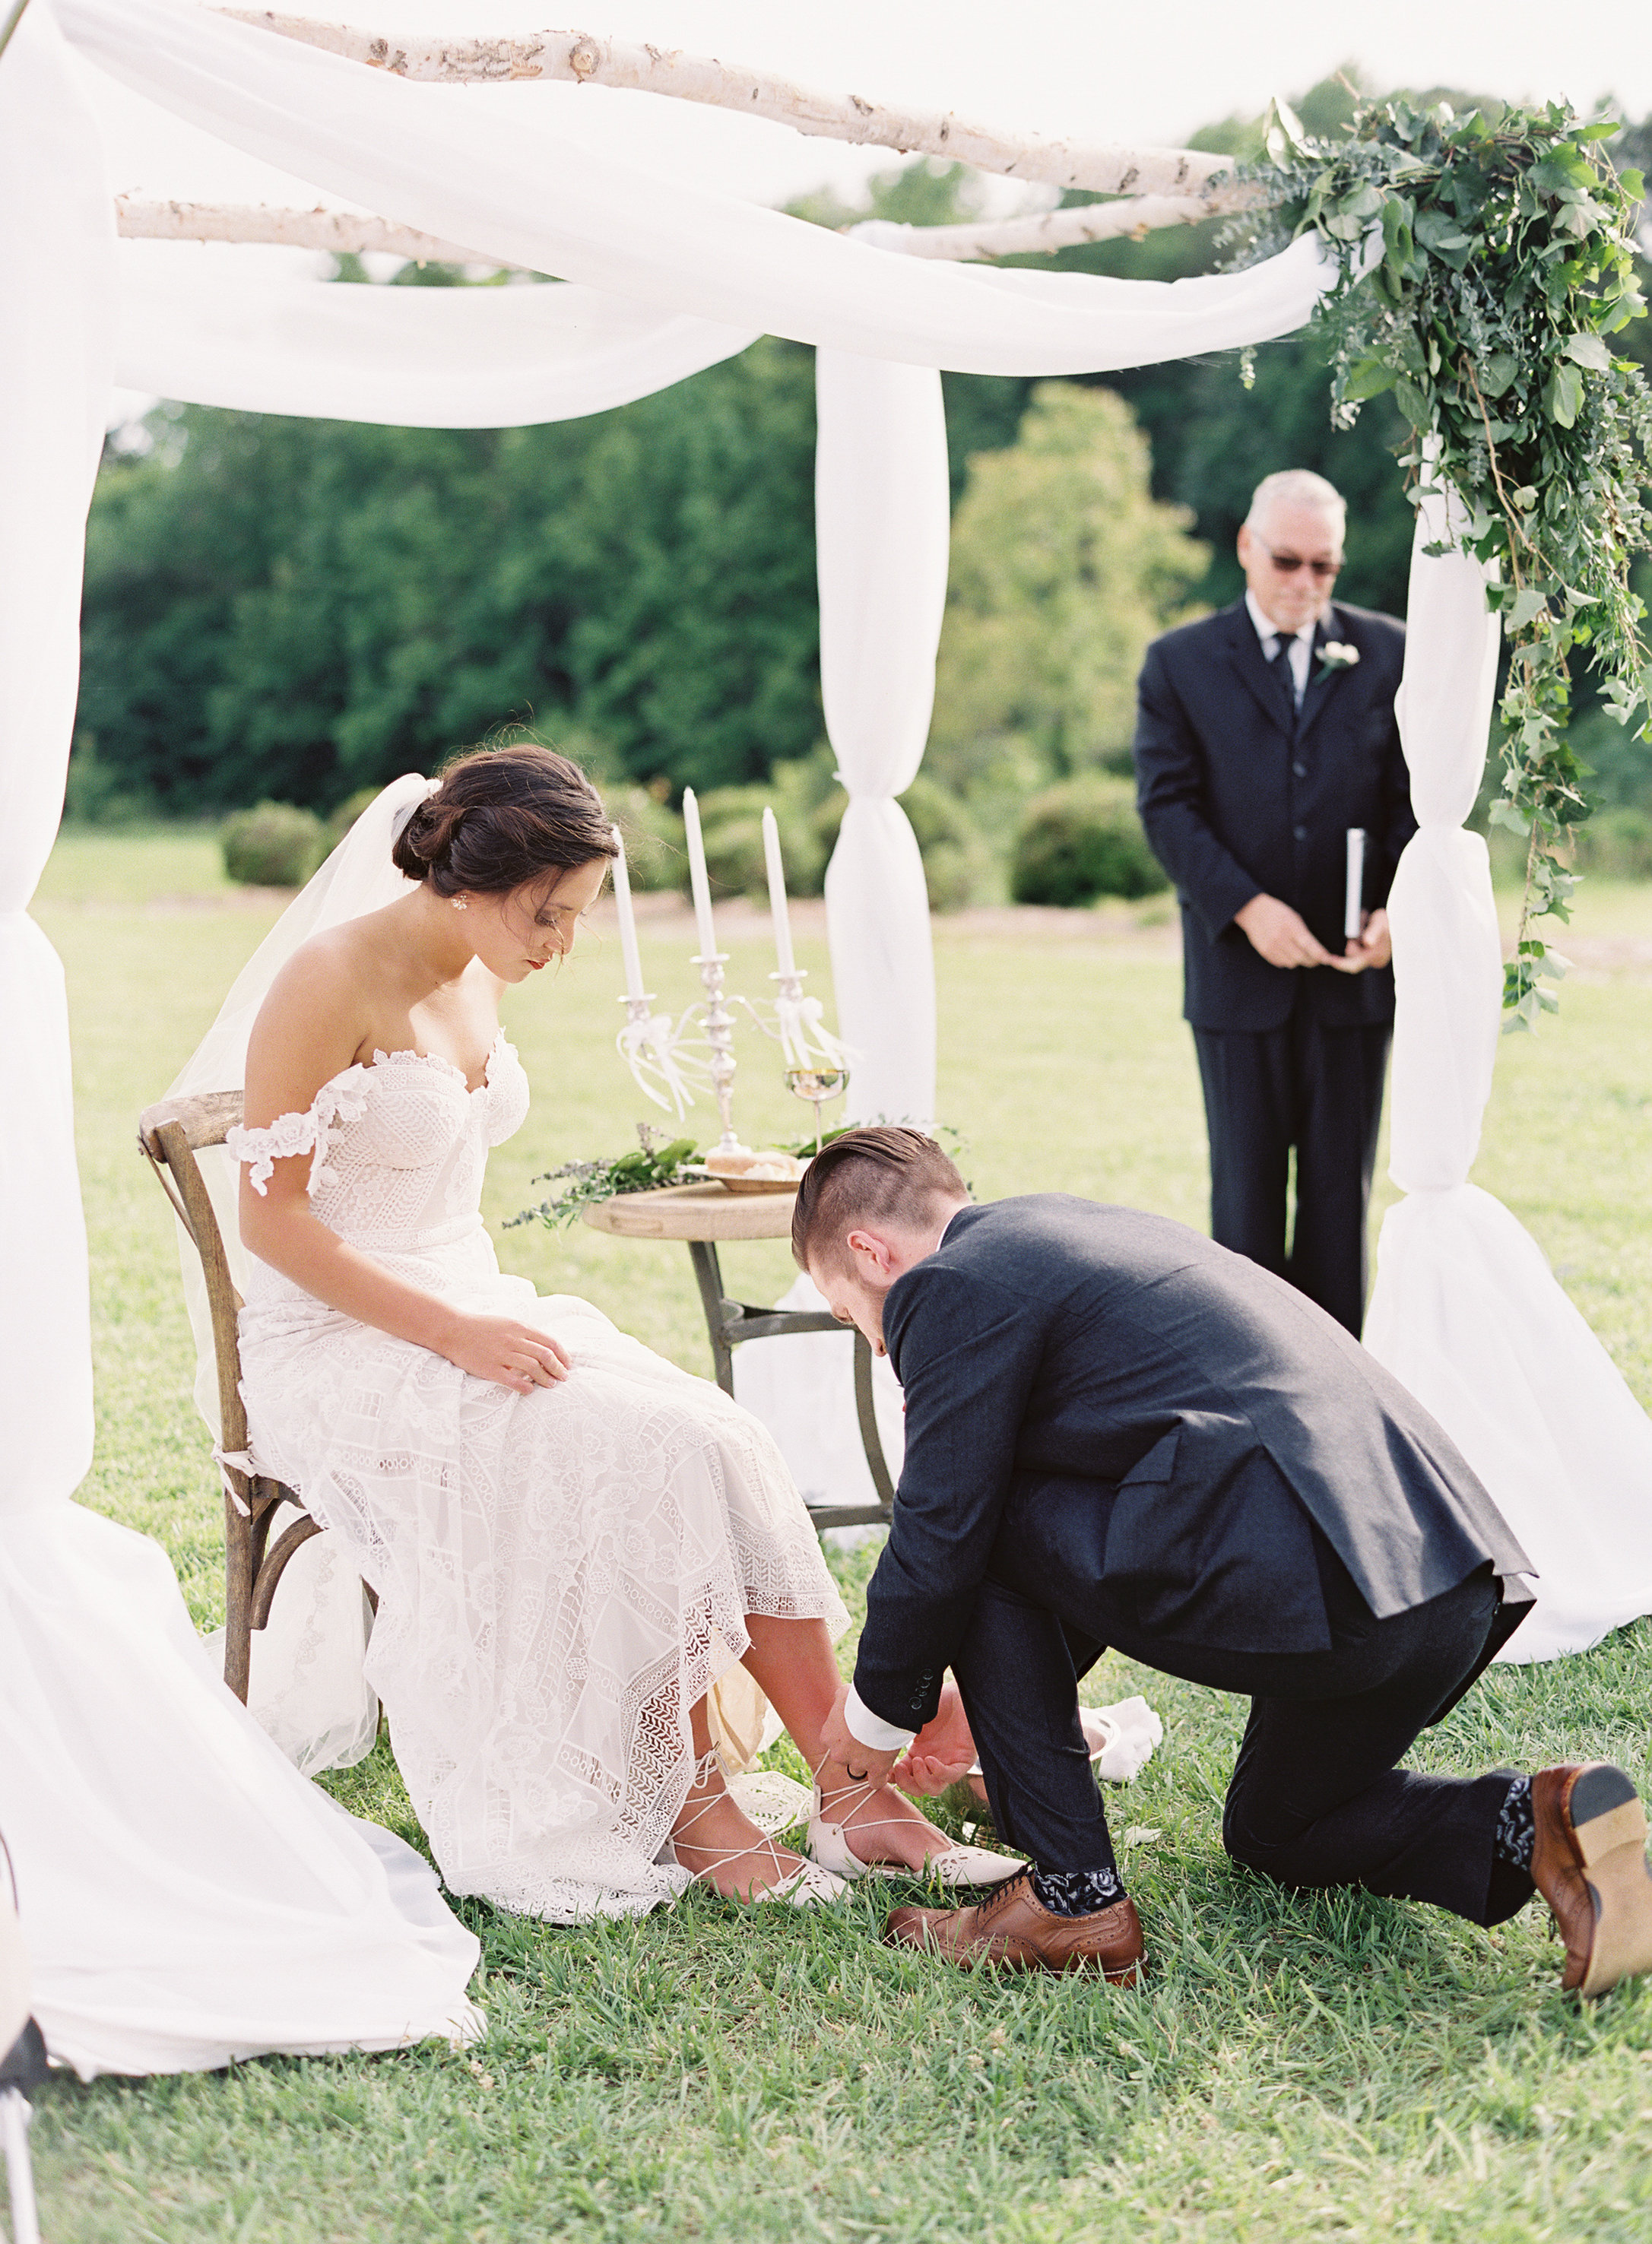 Make your ceremony stand out by adding unique personal touches. For Cassie and Stephen, it was communion, worship, and foot washing.